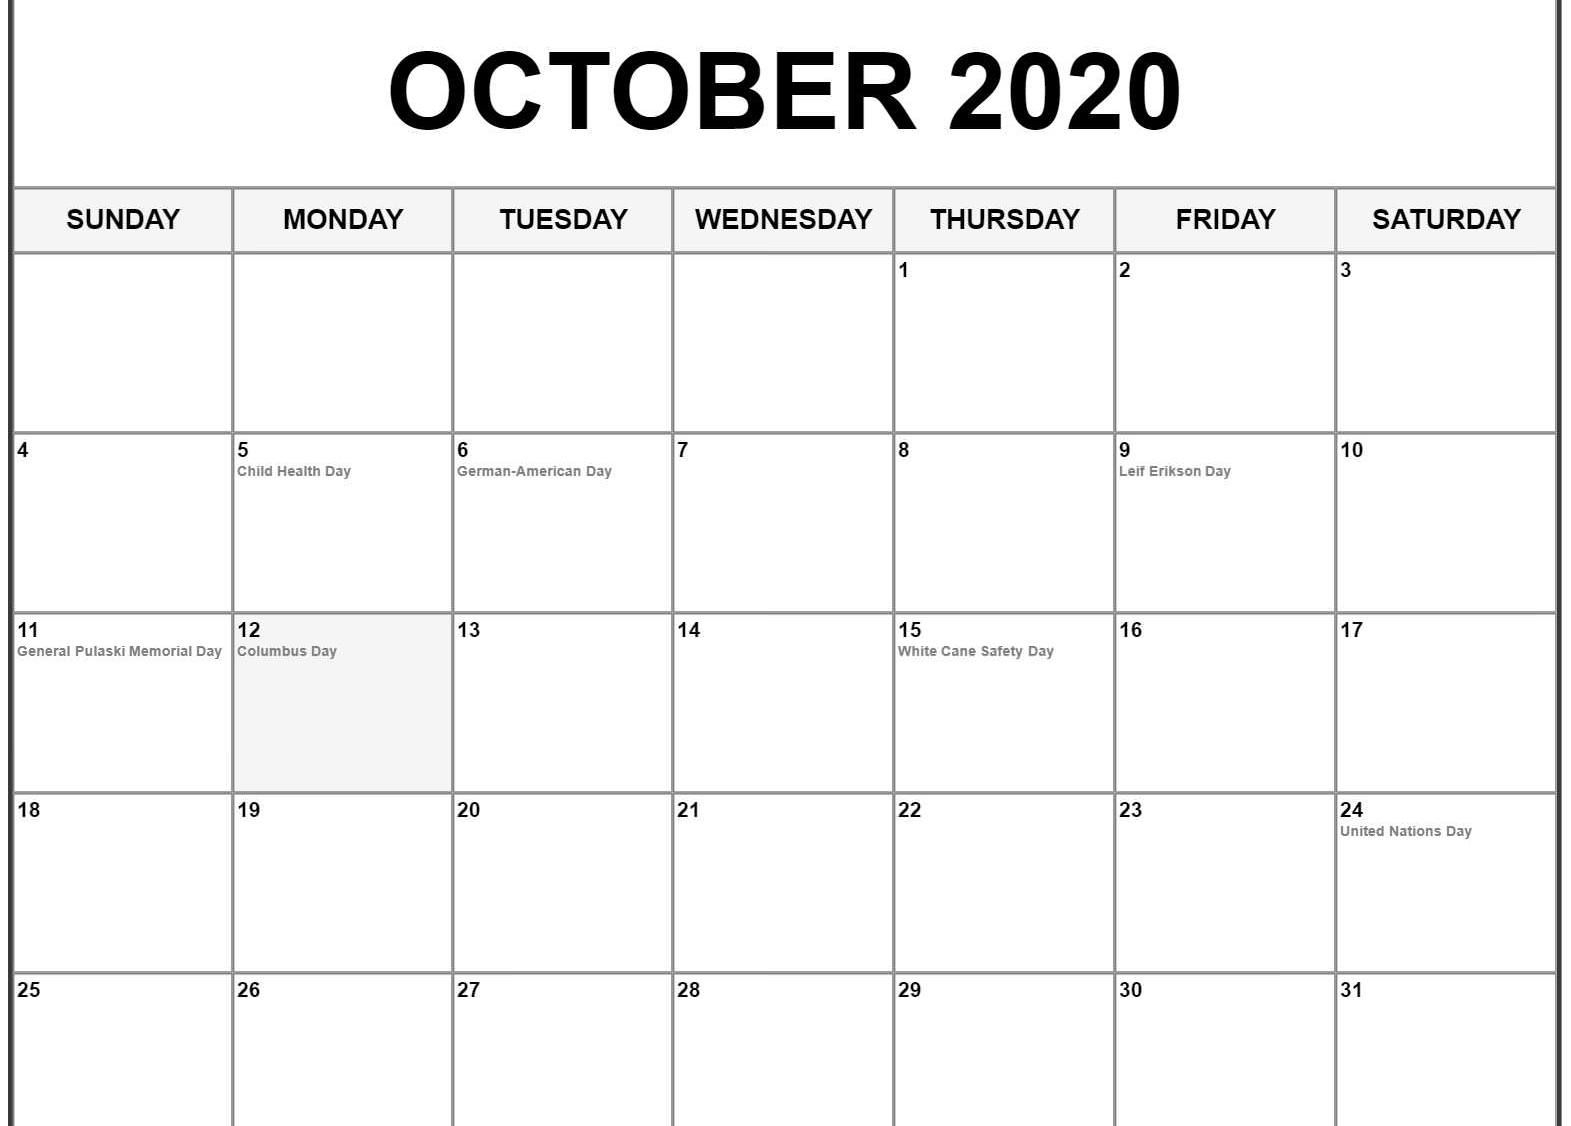 October 2020 Calendar Pdf, Word, Excel Template | October